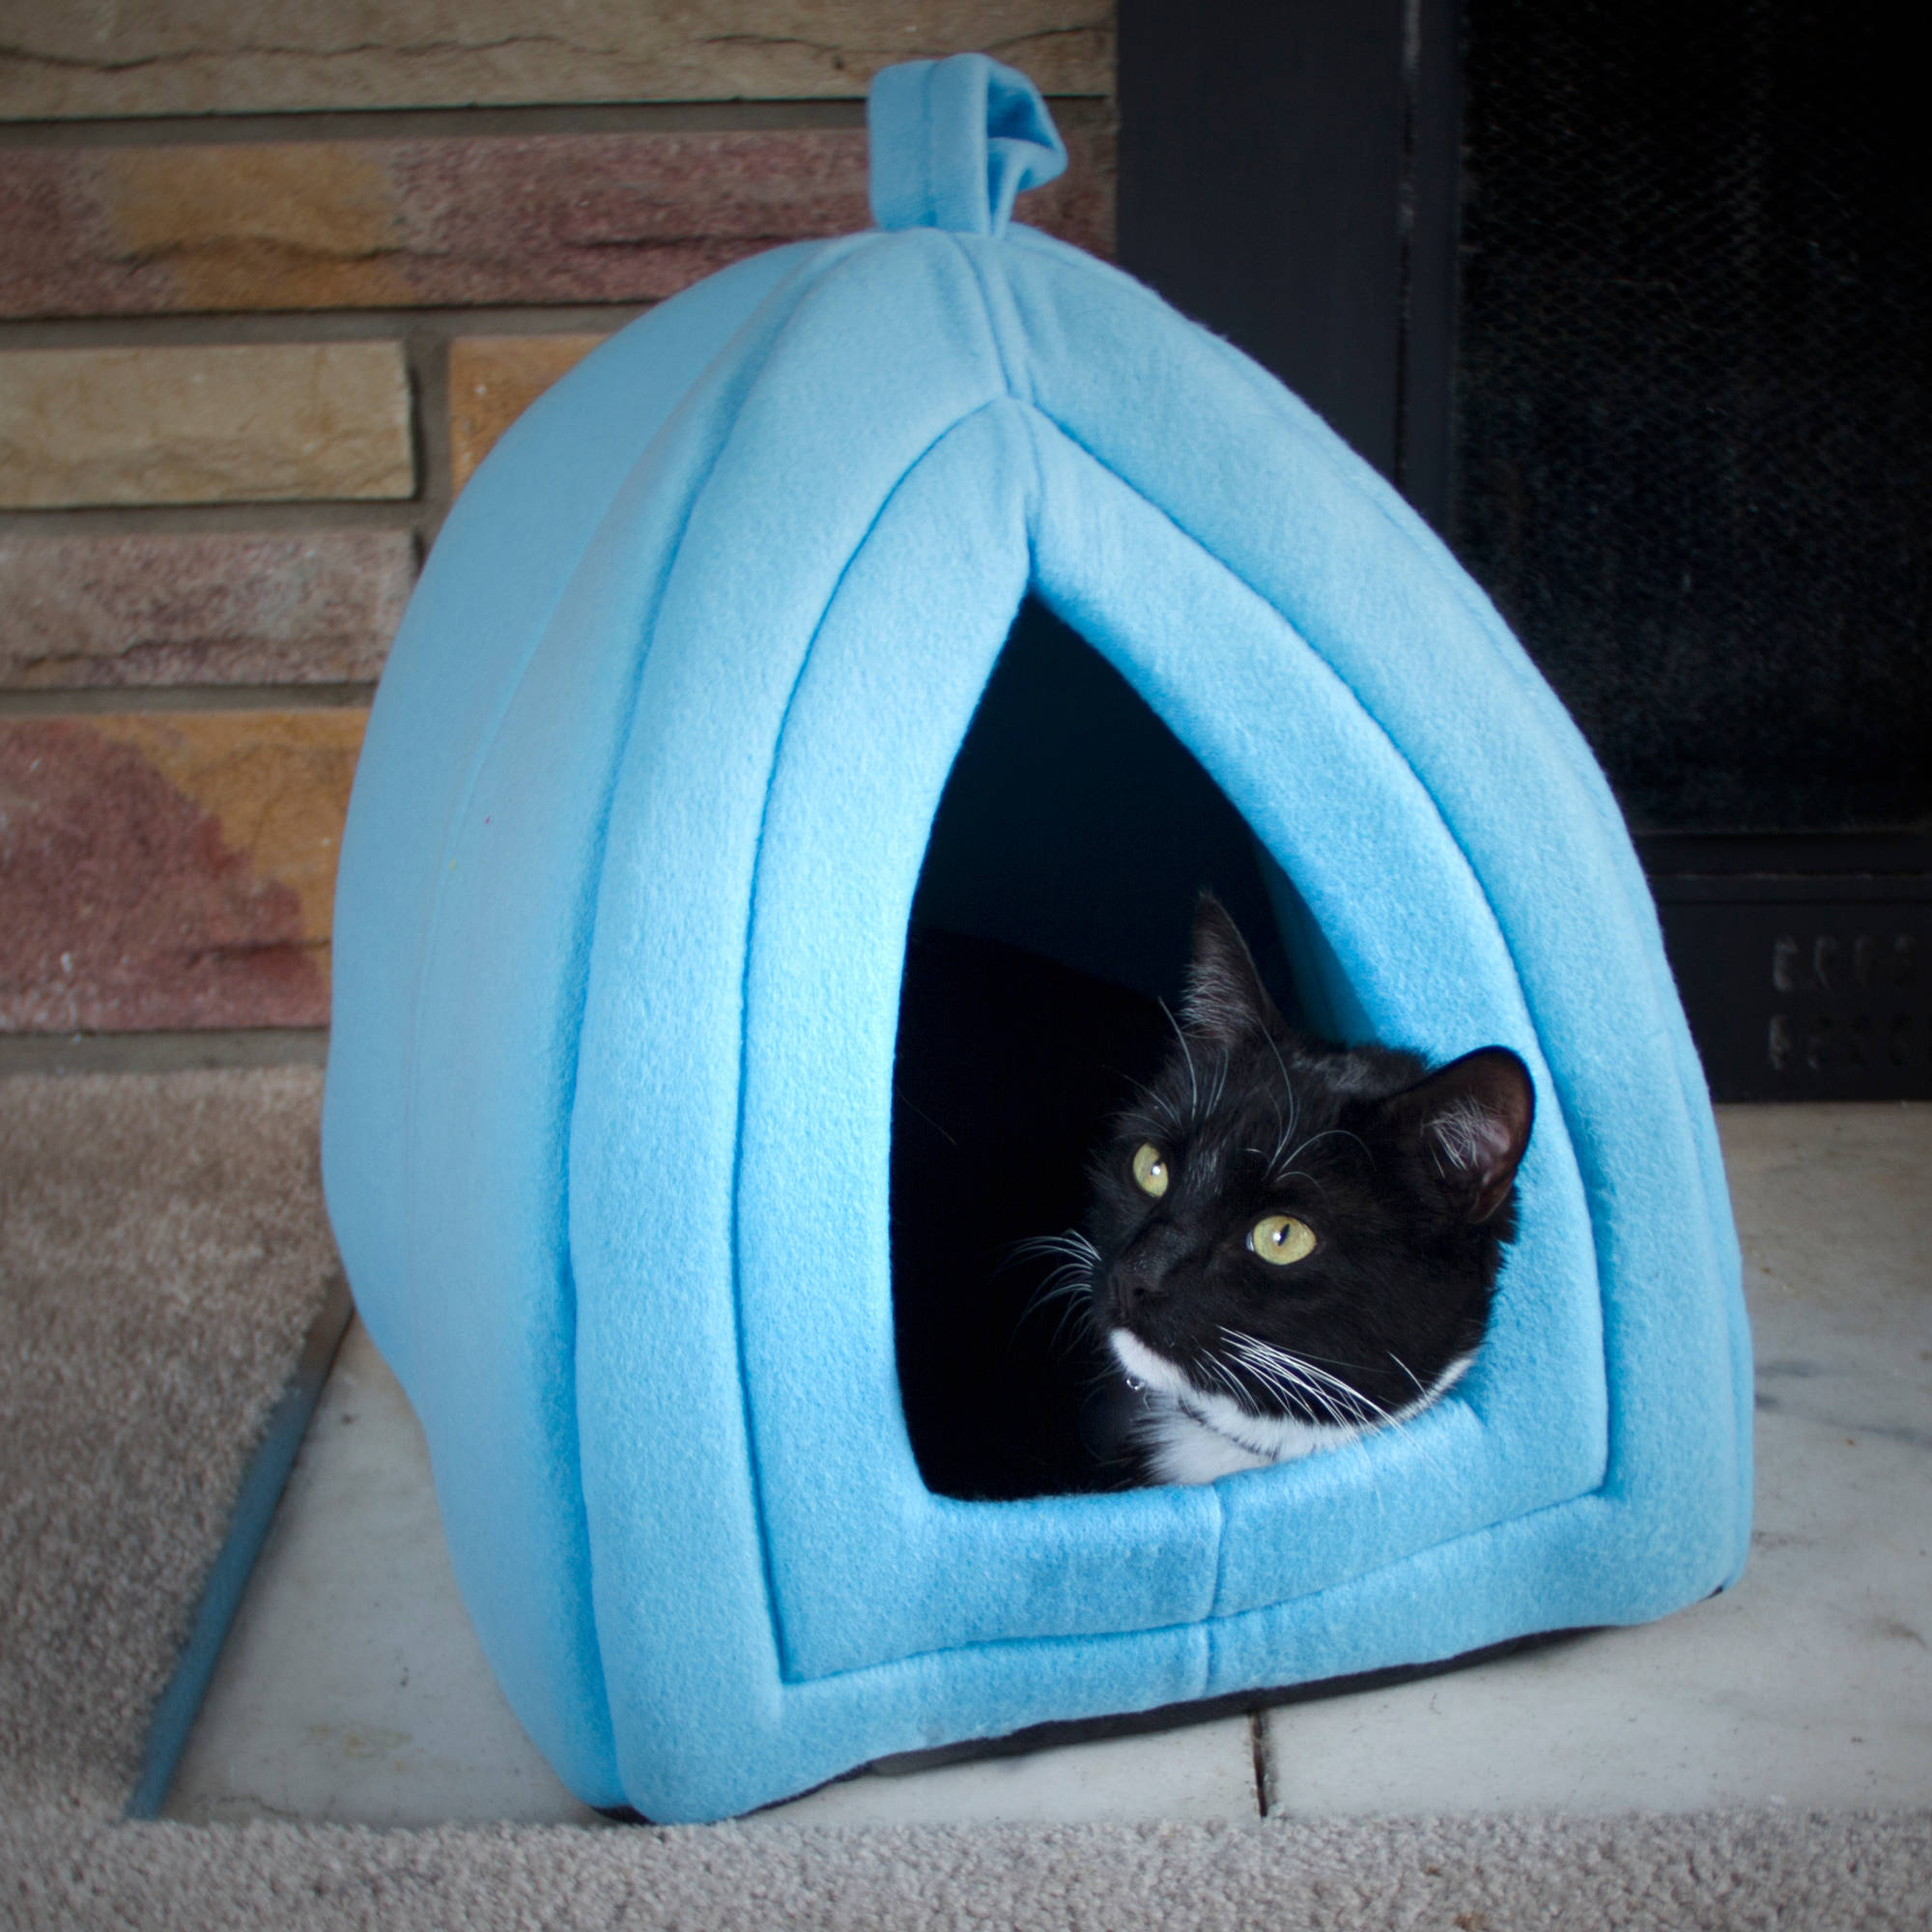 Petmaker Cozy Kitty Tent Igloo Plush Enclosed Cat Bed Walmart